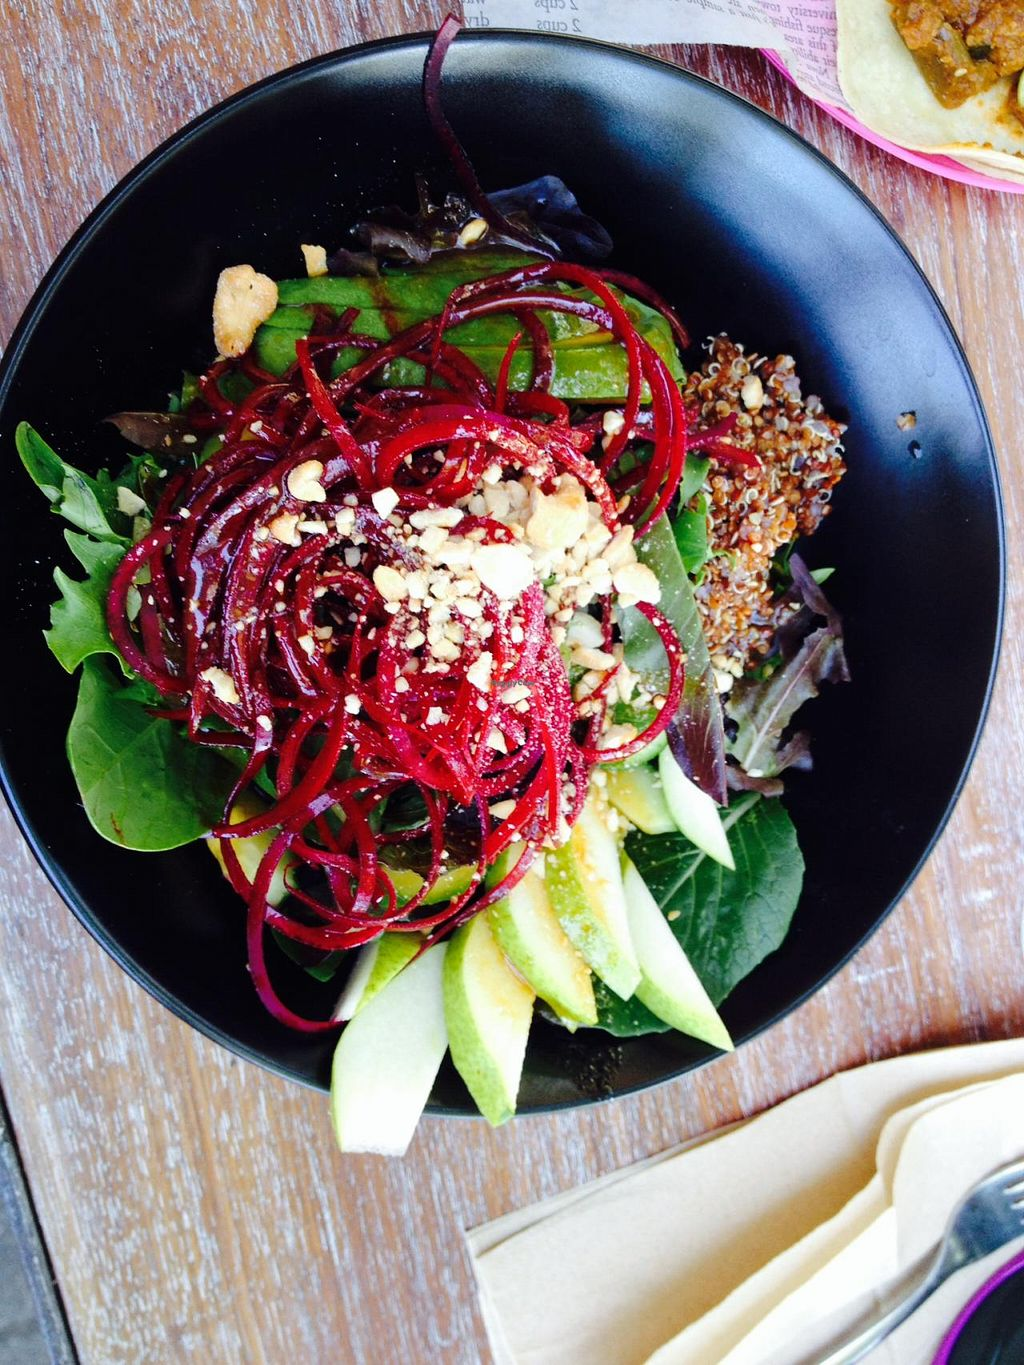 """Photo of La Cantina  by <a href=""""/members/profile/Hayley143"""">Hayley143</a> <br/>Vegan salad with sesame ginger dressing.  <br/> August 11, 2014  - <a href='/contact/abuse/image/50239/76718'>Report</a>"""